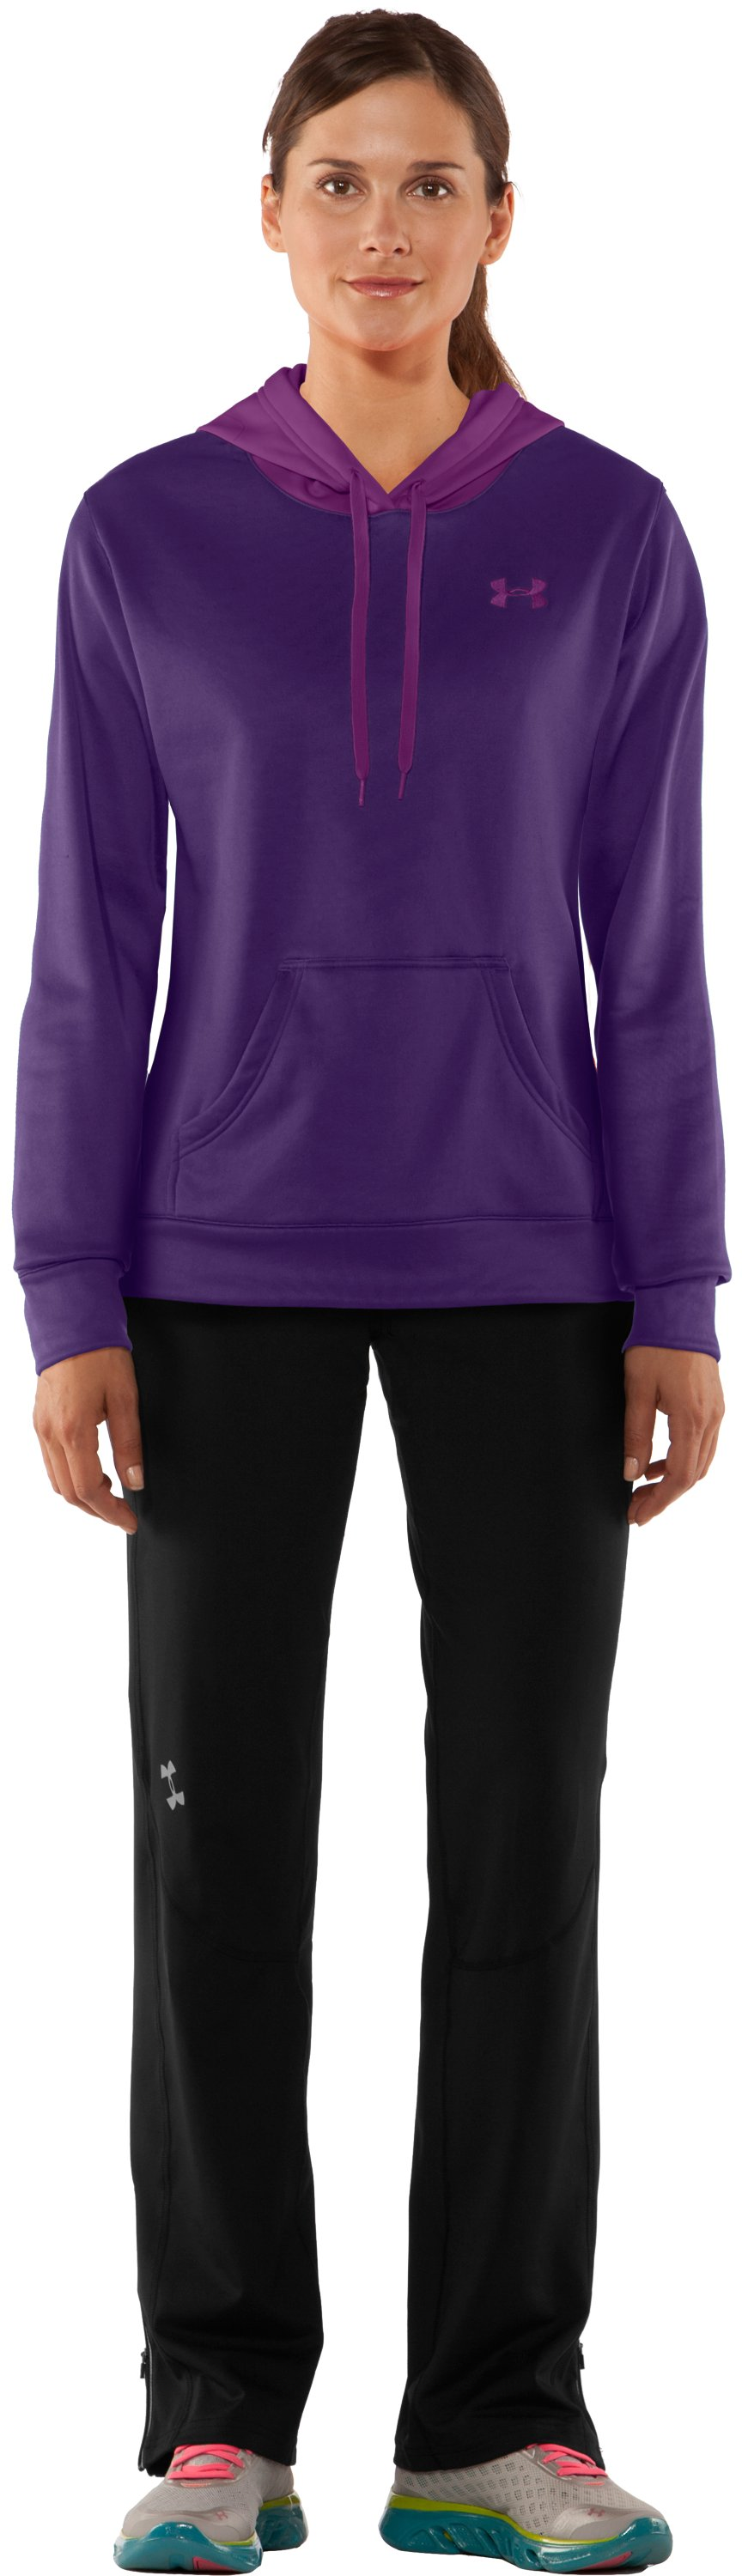 Women's Armour® Fleece Divide Hoodie, Zone